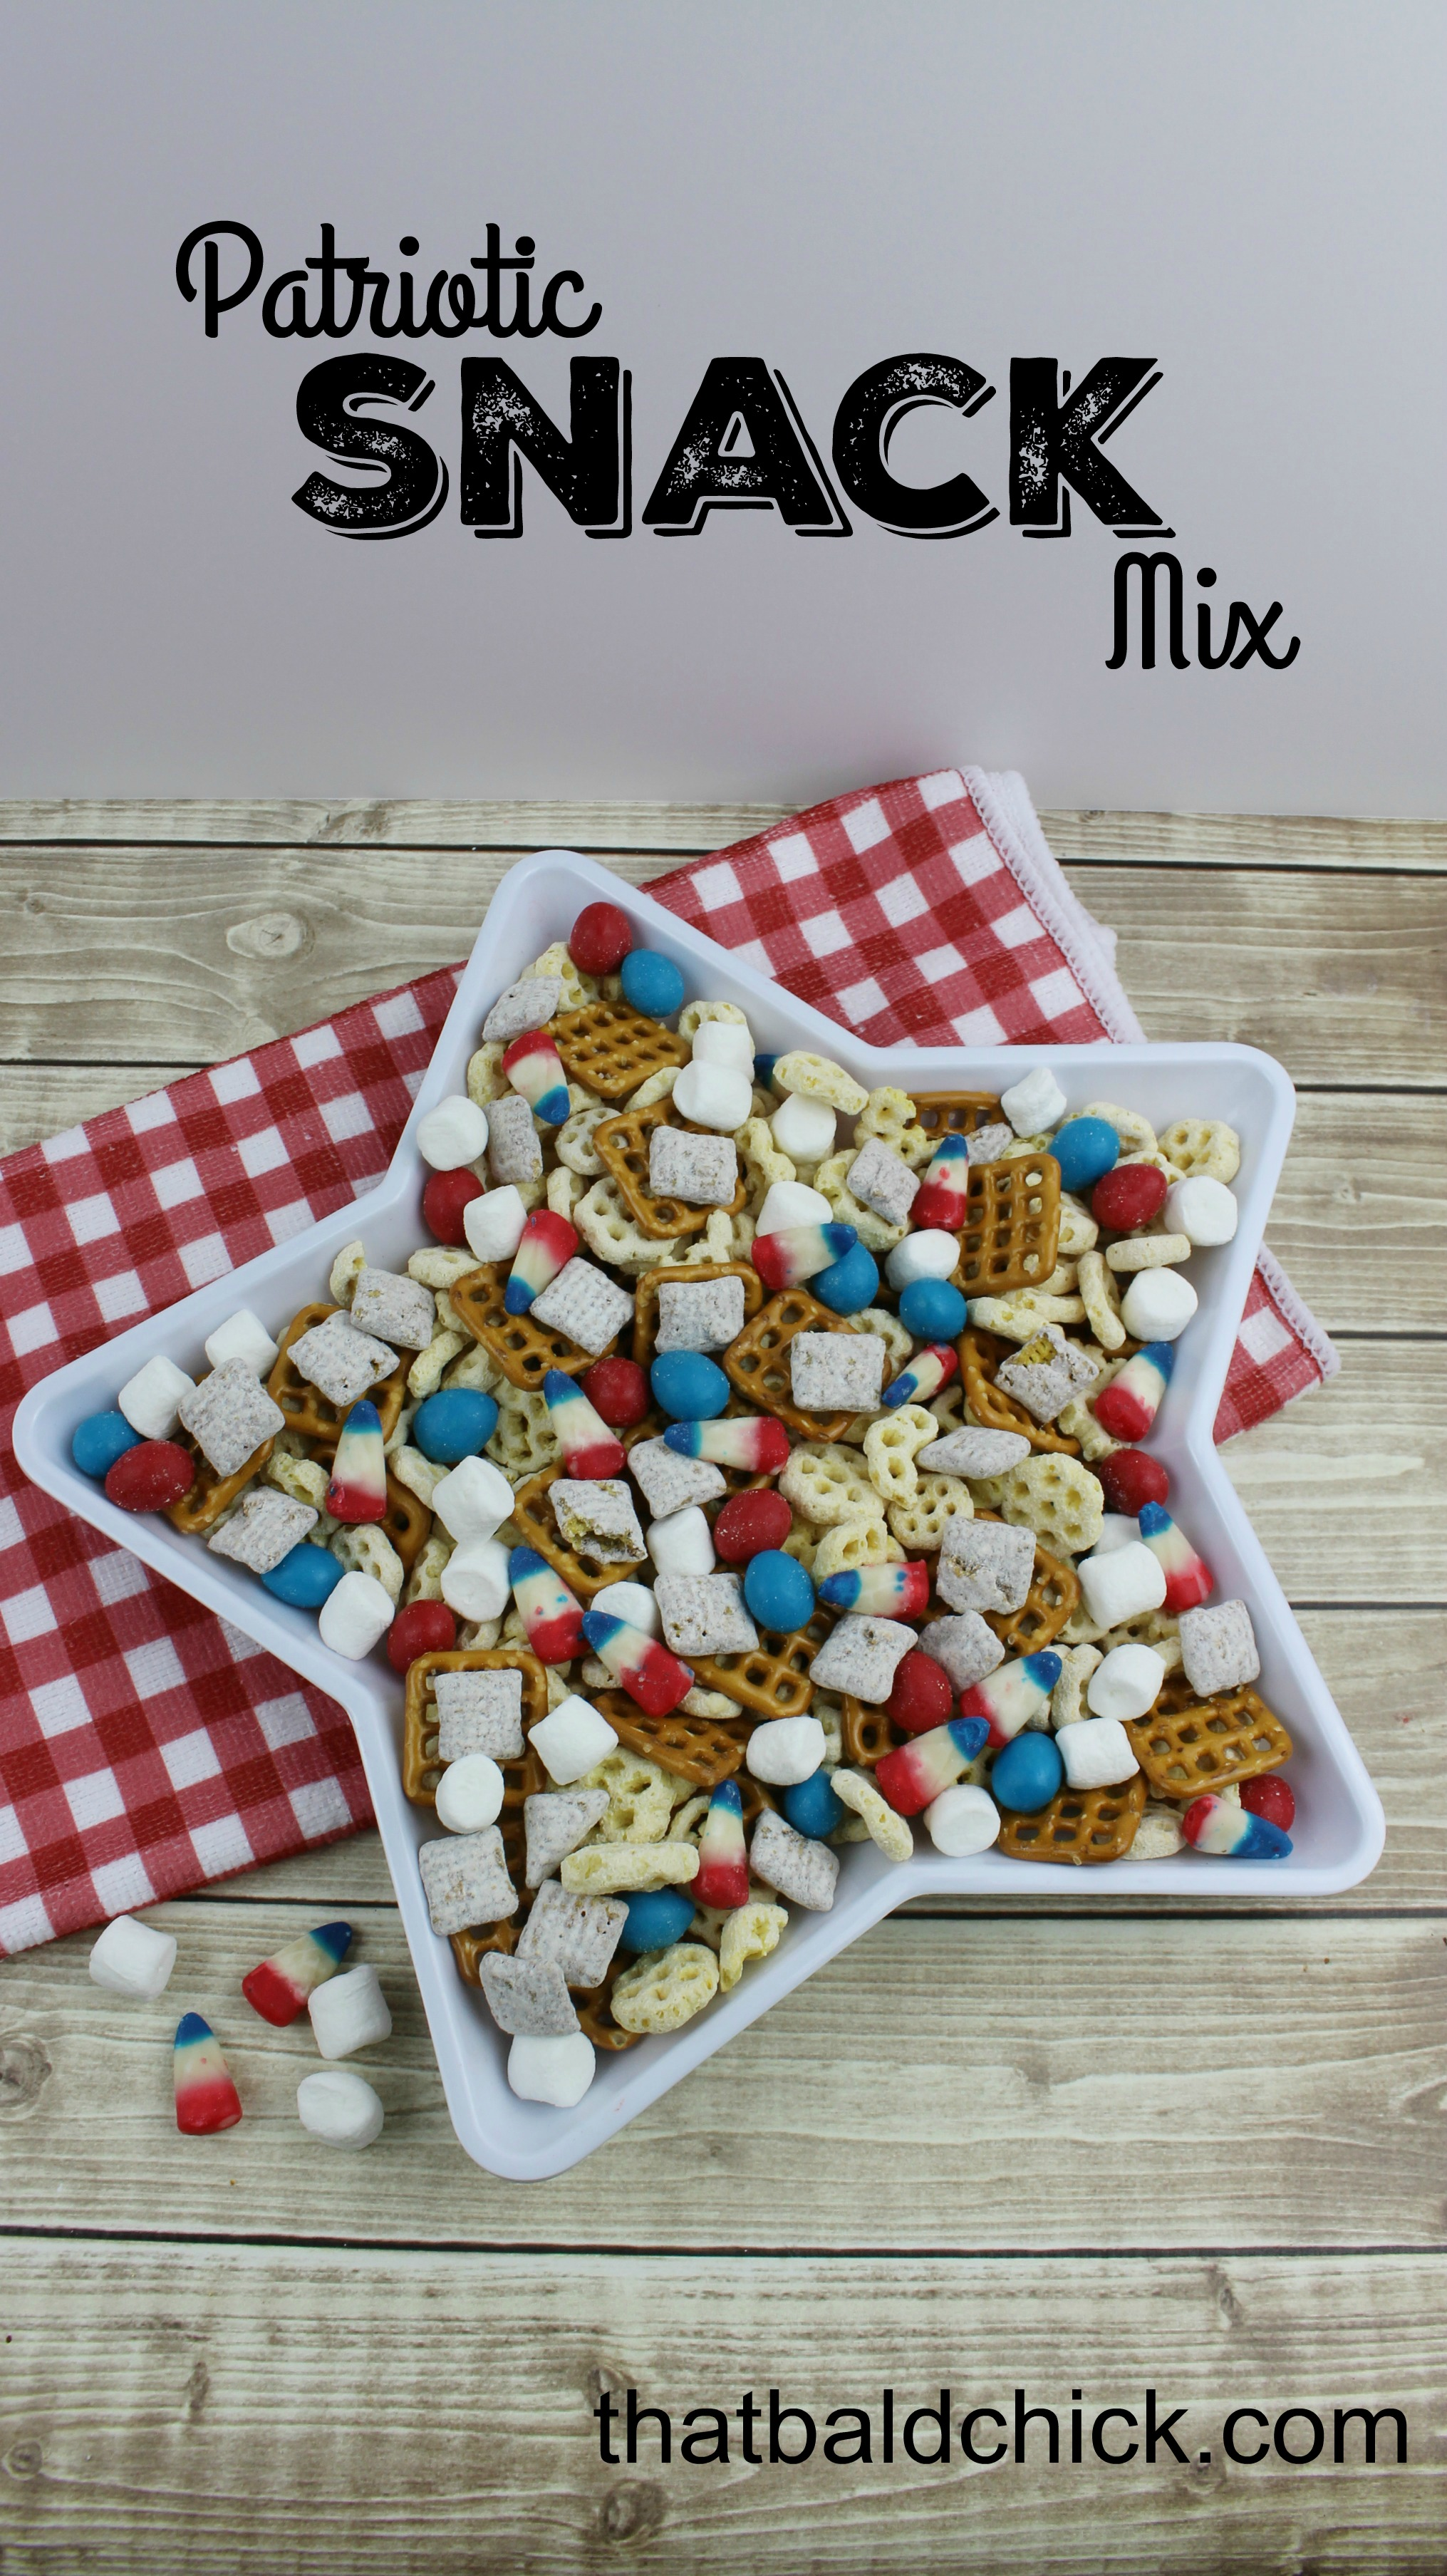 Patriotic Snack Mix Recipe @thatbaldchick